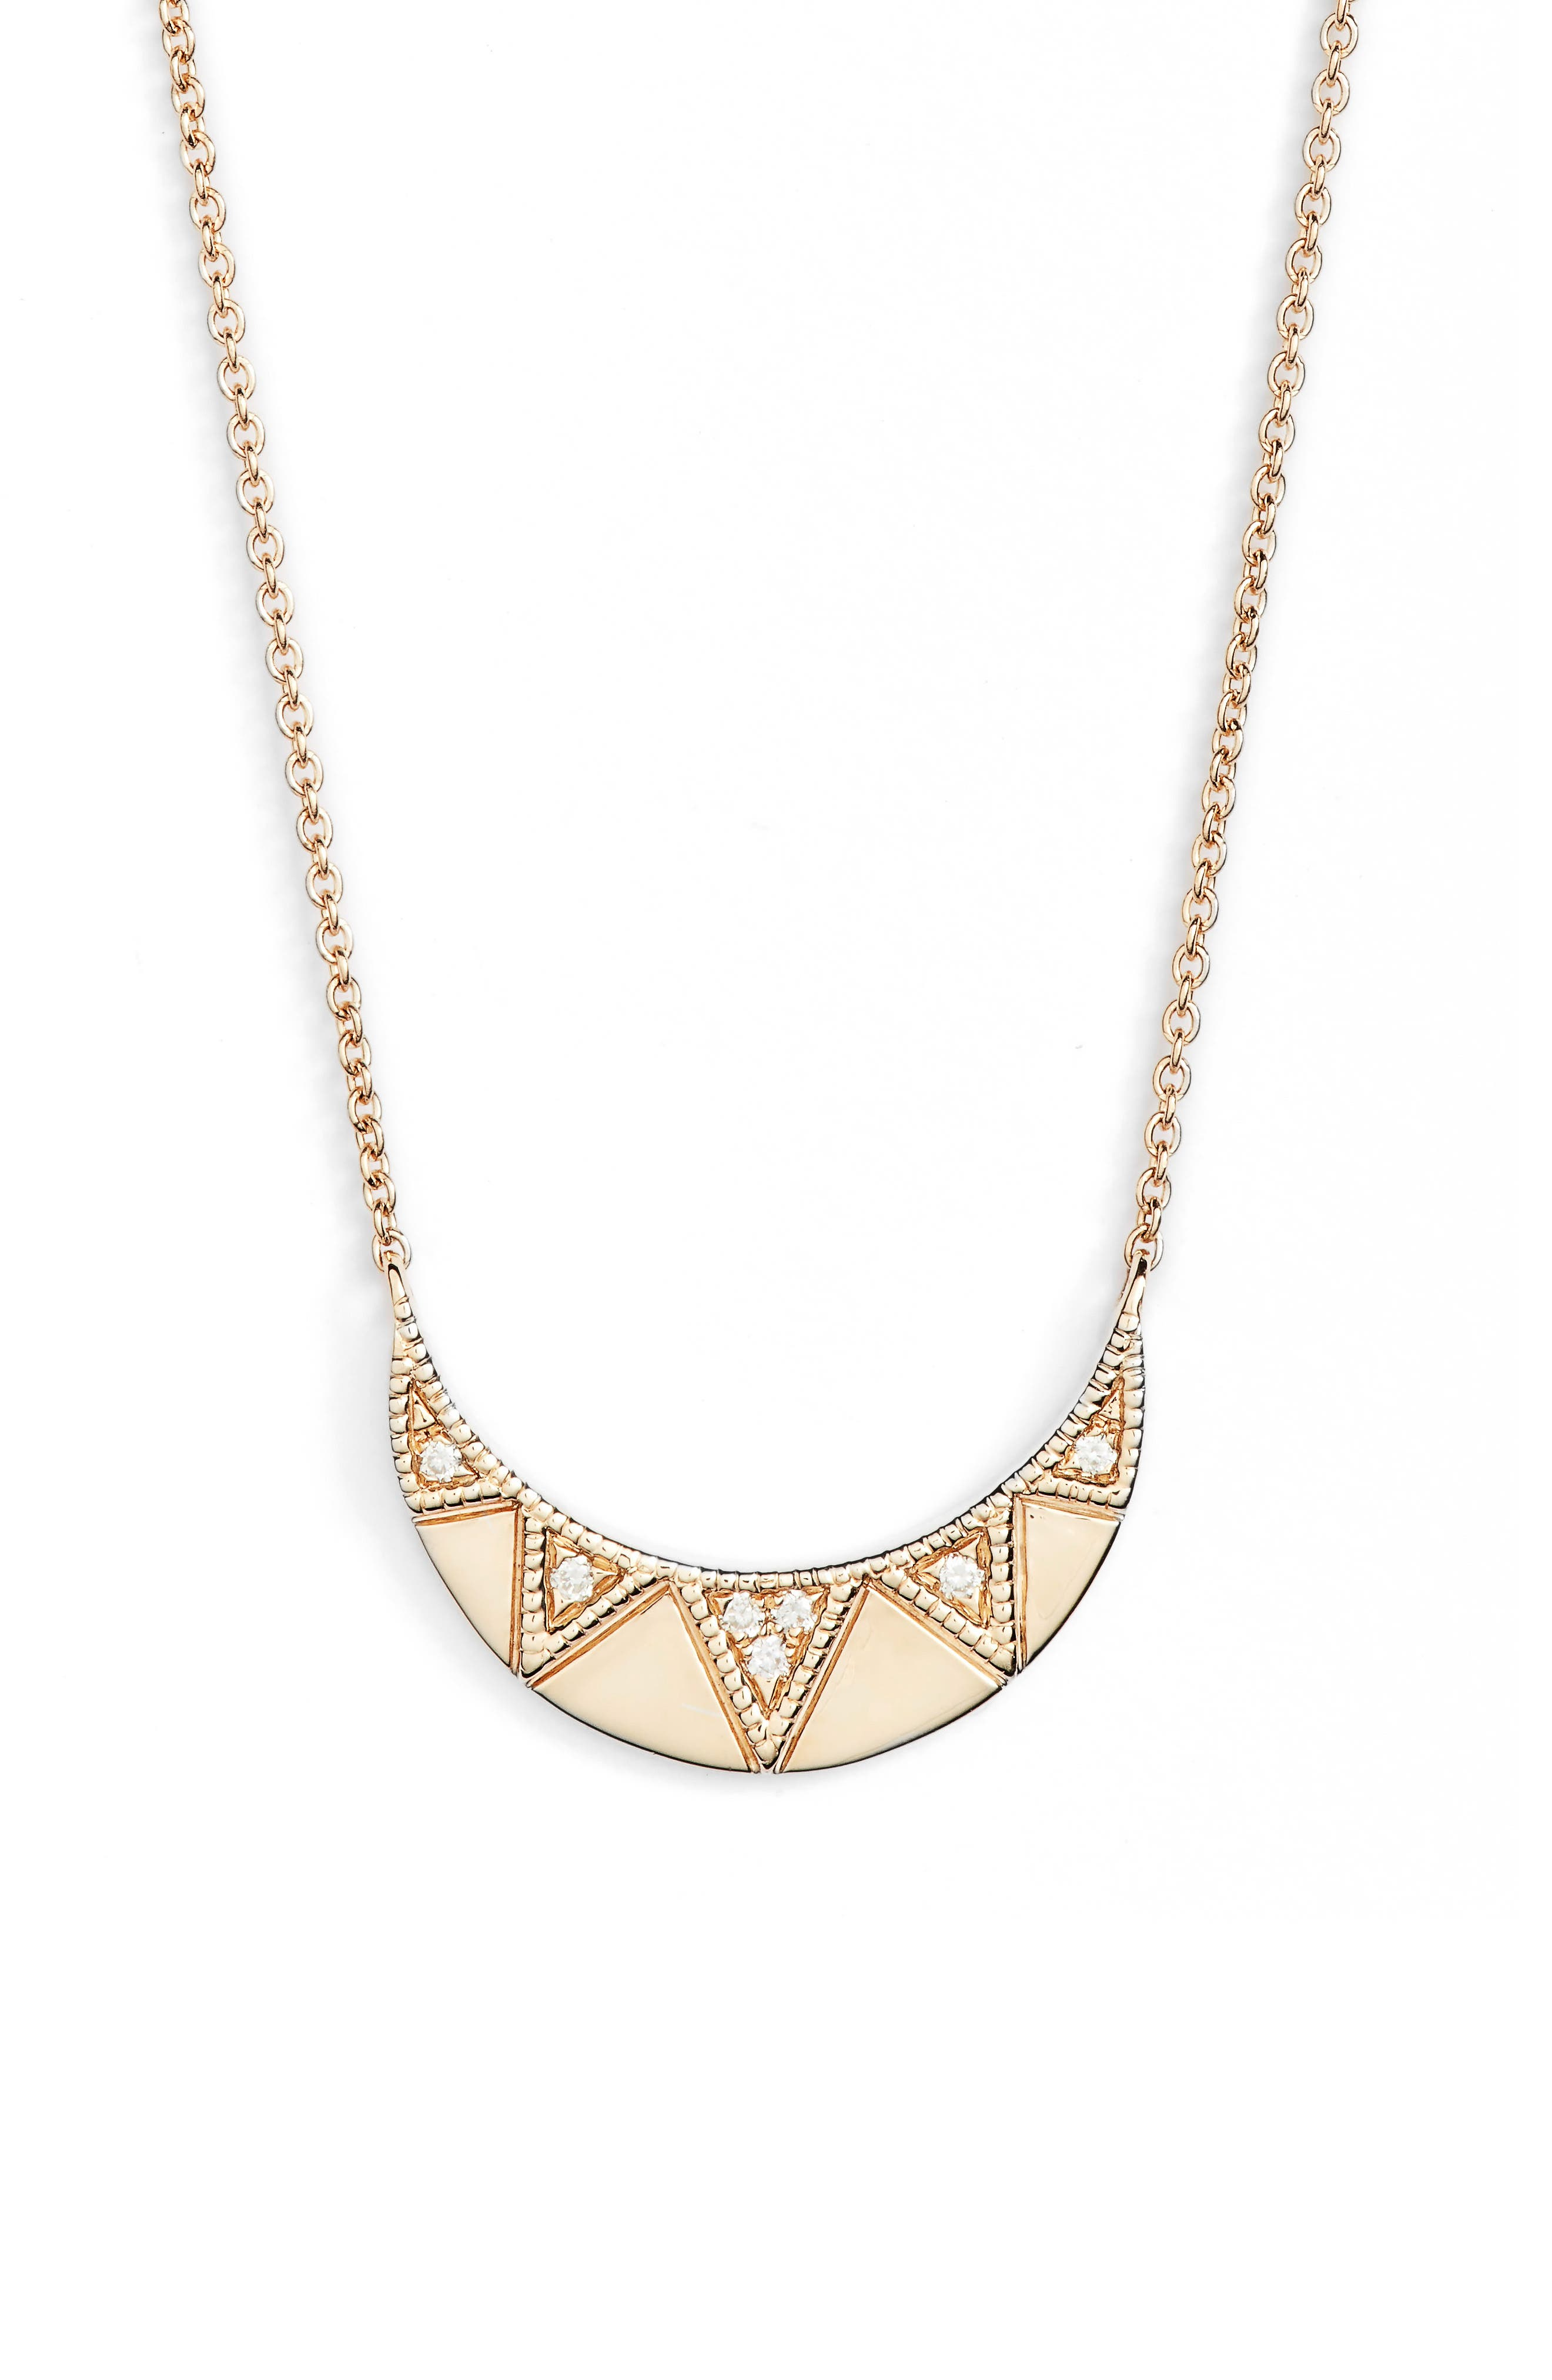 Dana Rebecca Designs Jeanie Ann Diamond Pendant Necklace